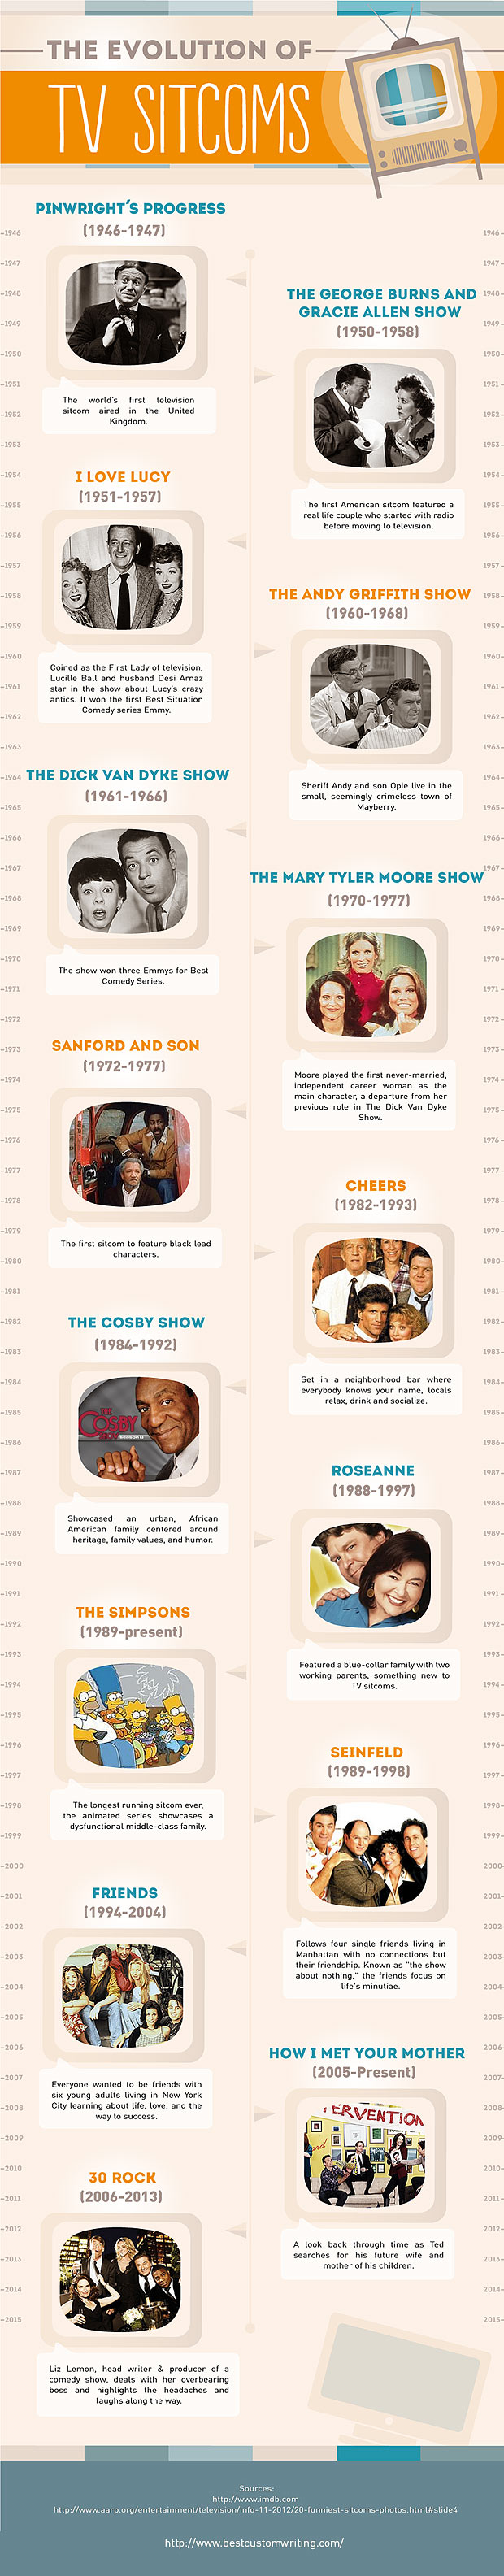 The evolution of TV sitcoms by BestCustomWriting.com